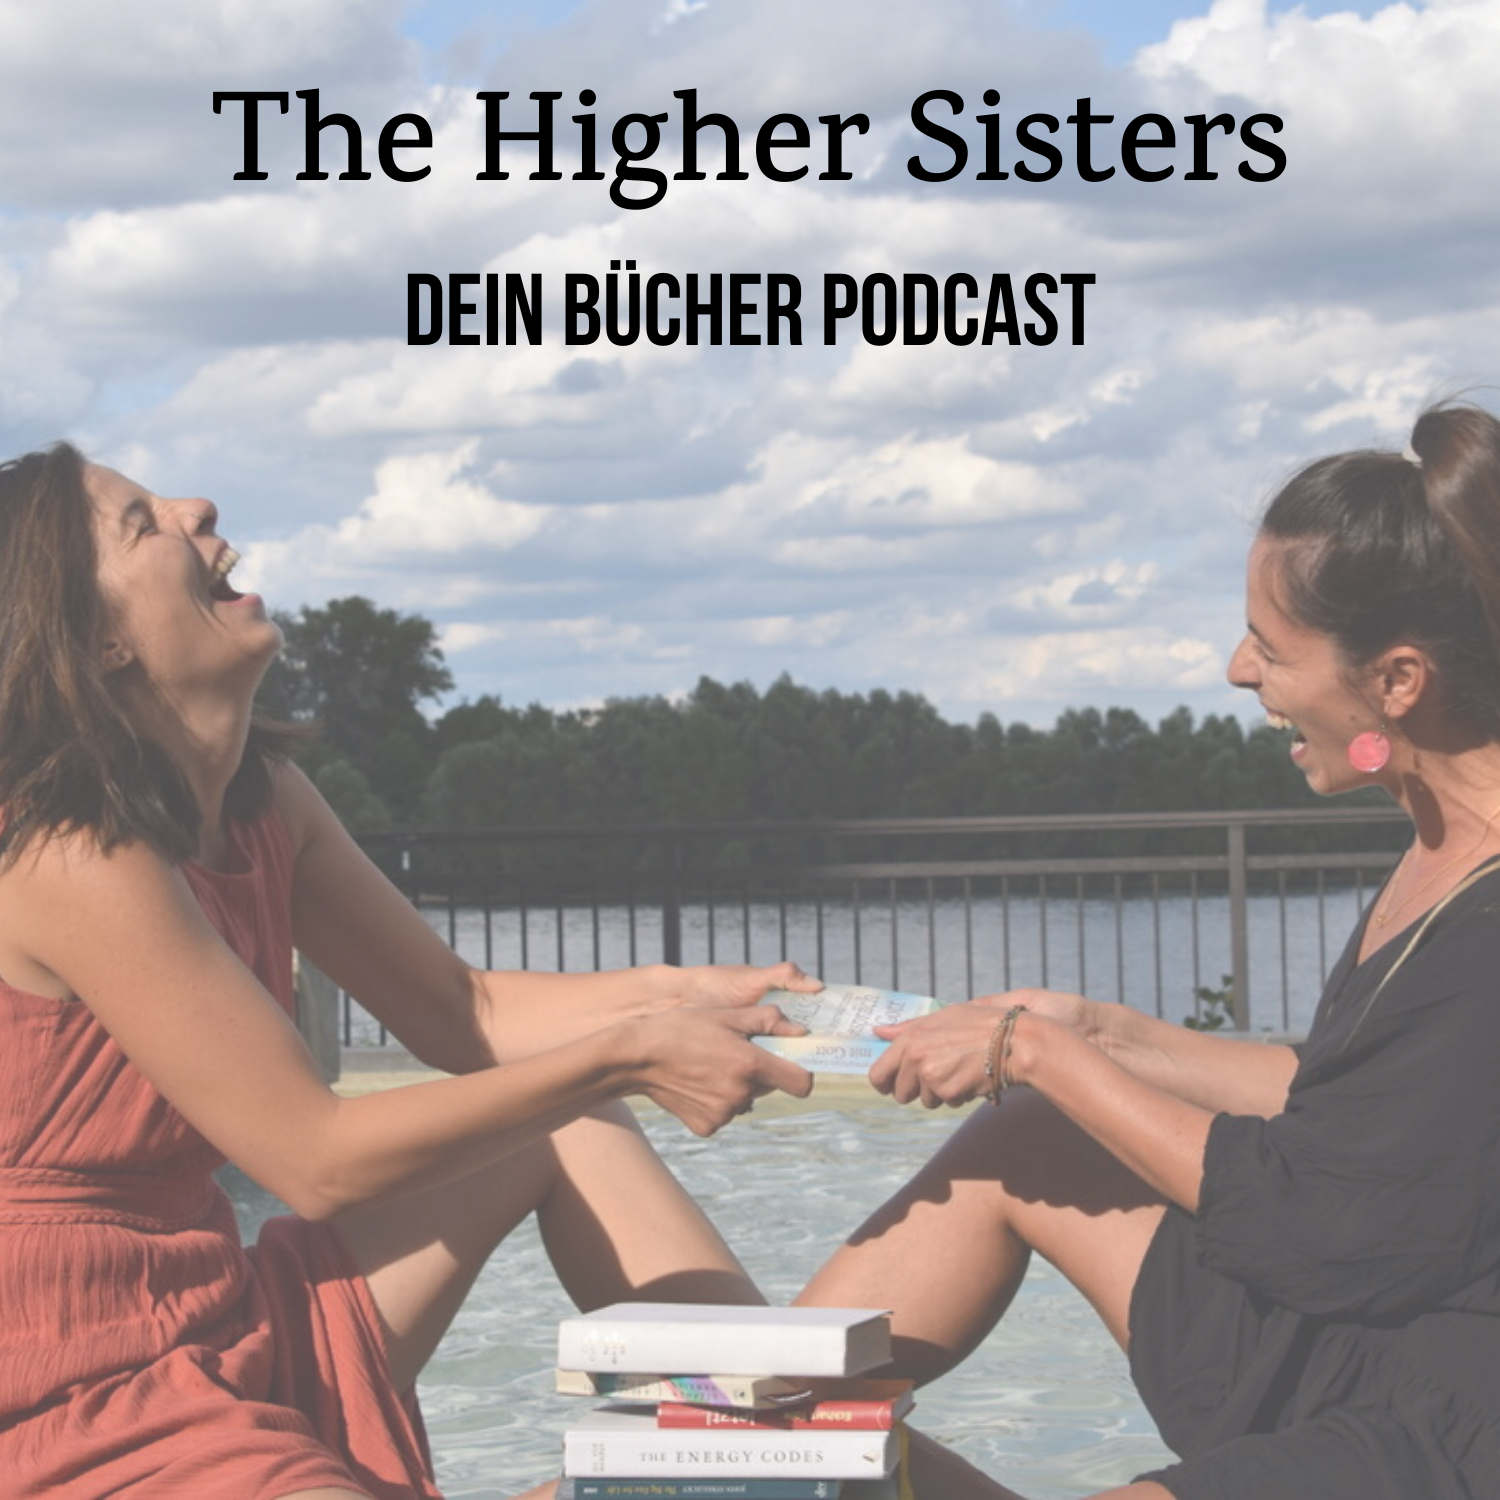 The Higher Sisters